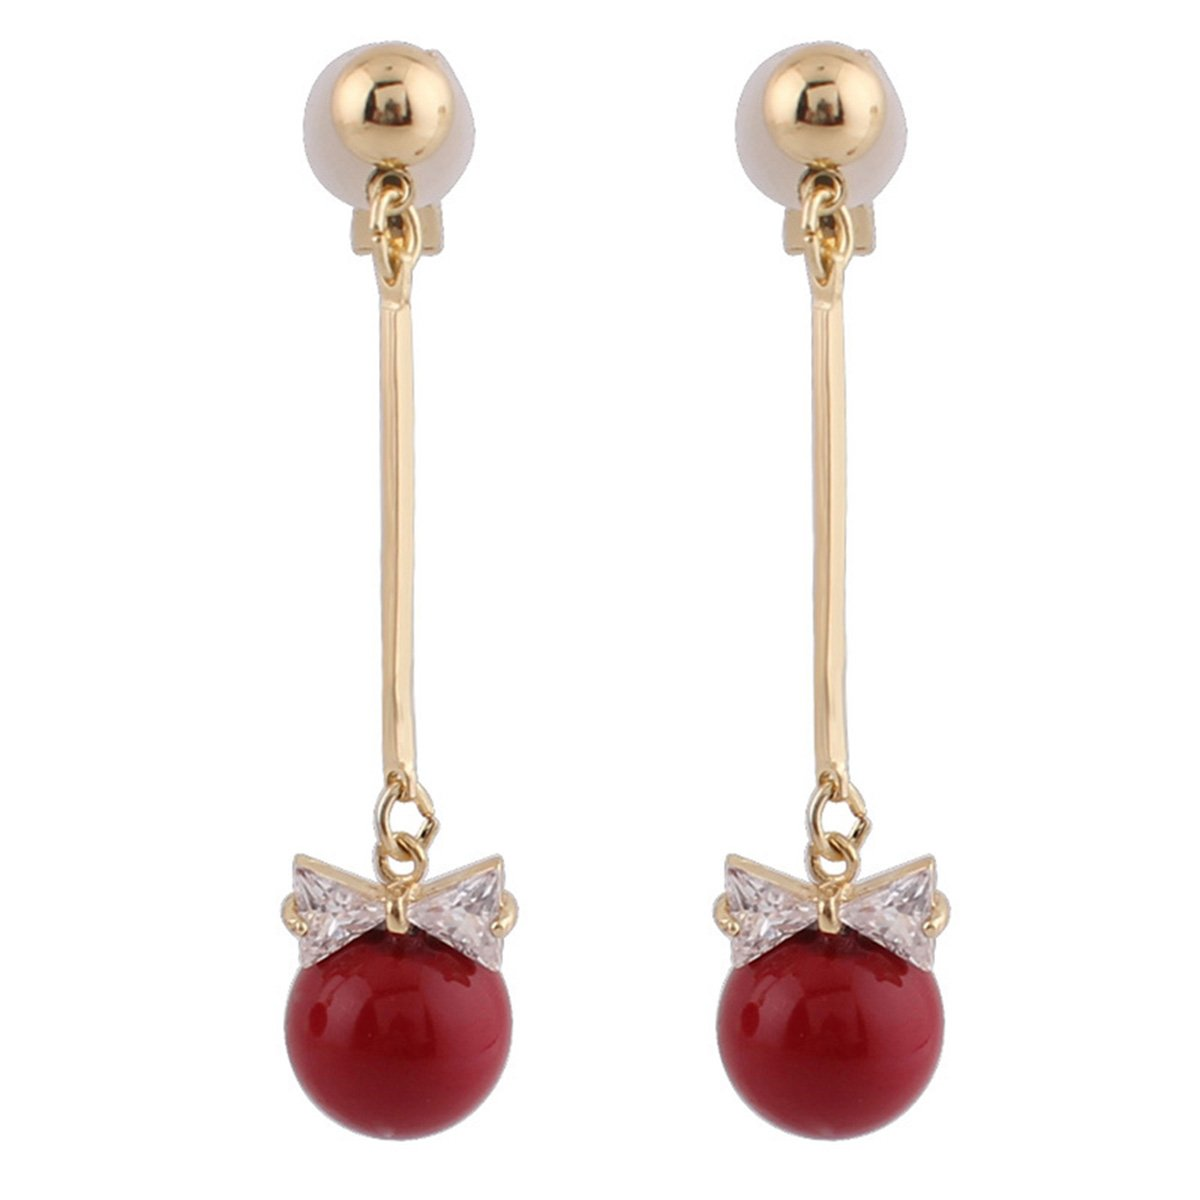 Grace Jun Bridal Gold Plated CZ Bowknot Long Drop Earrings and Clip on Earrings Without Piercing (Clip-on)